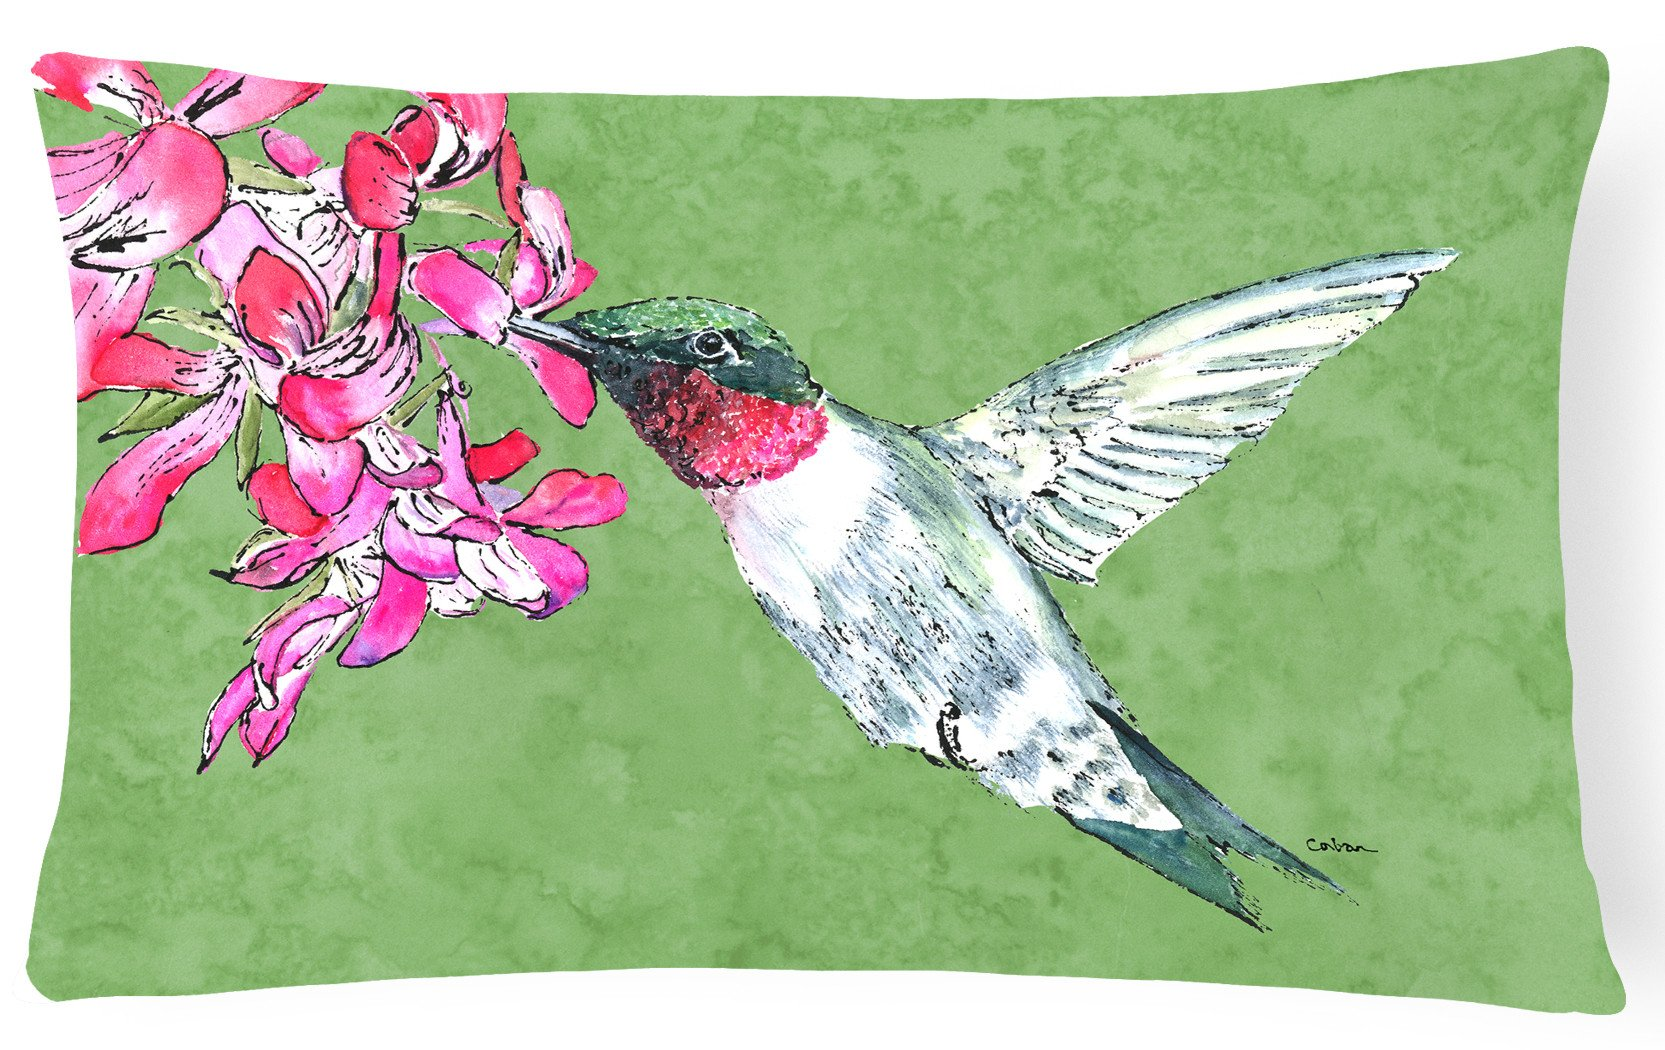 Hummingbird   Canvas Fabric Decorative Pillow by Caroline's Treasures